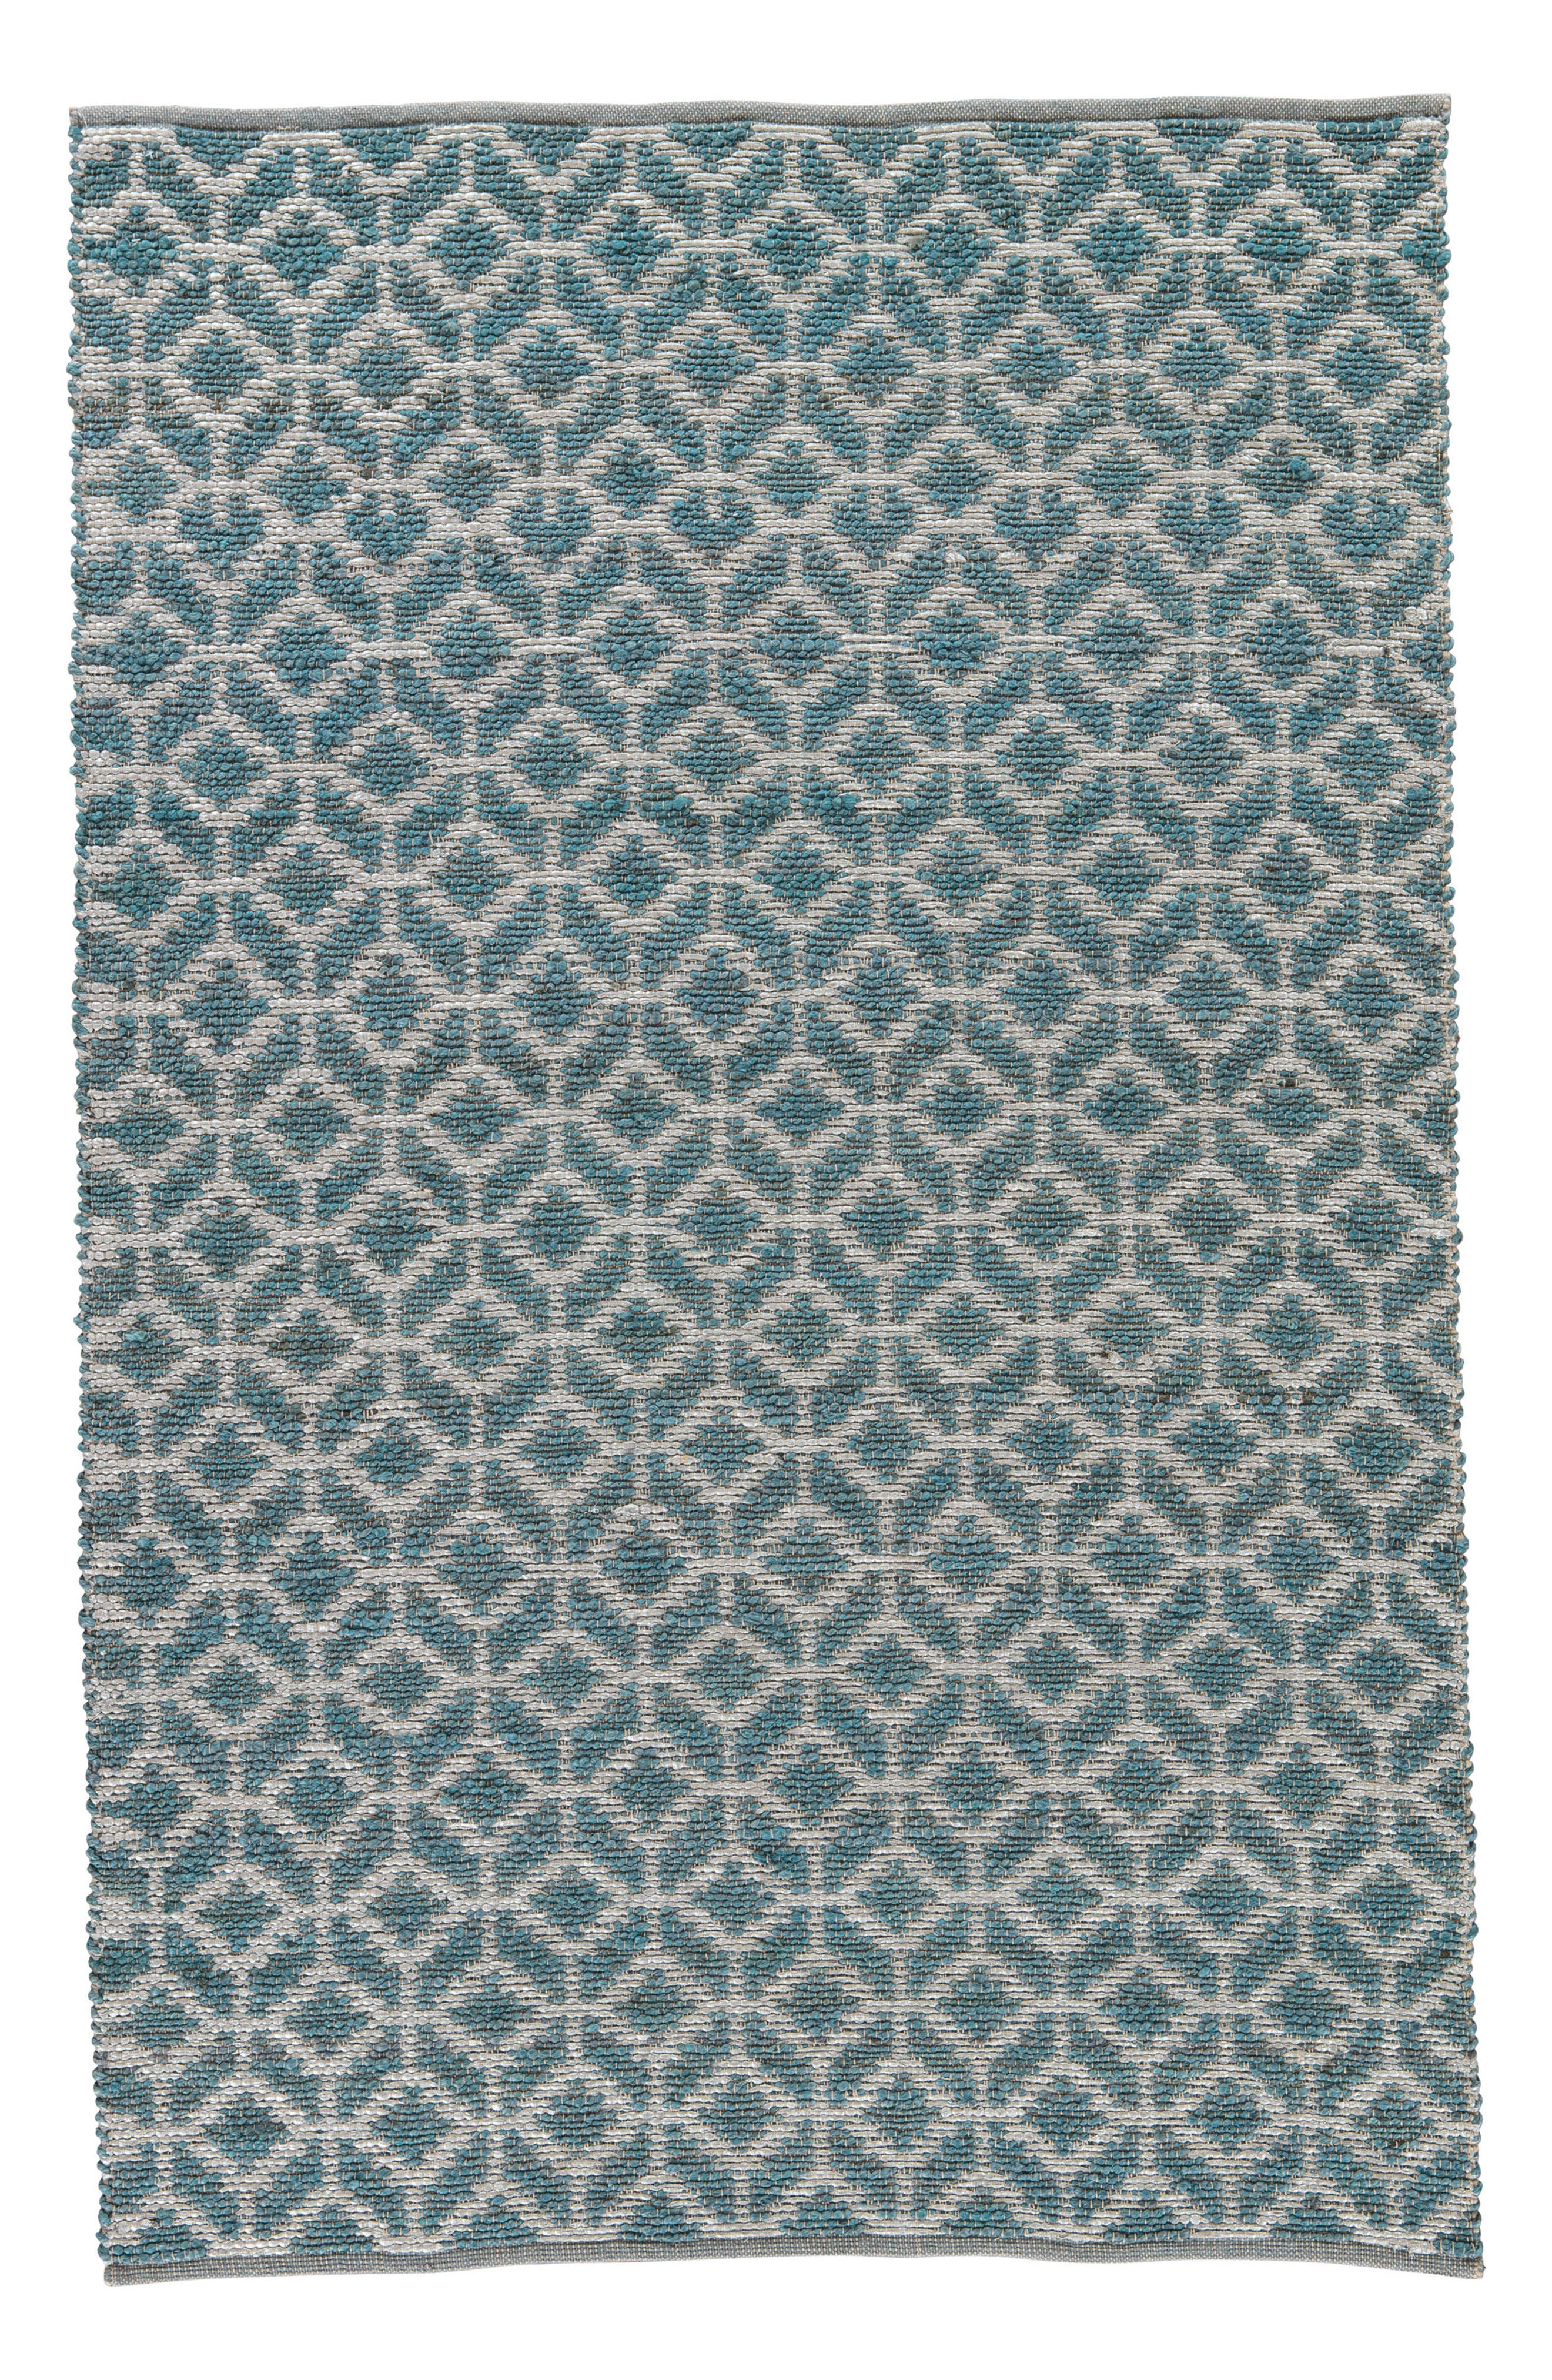 Calm Waters Rug,                         Main,                         color, INDIAN TEAL/ SILVER